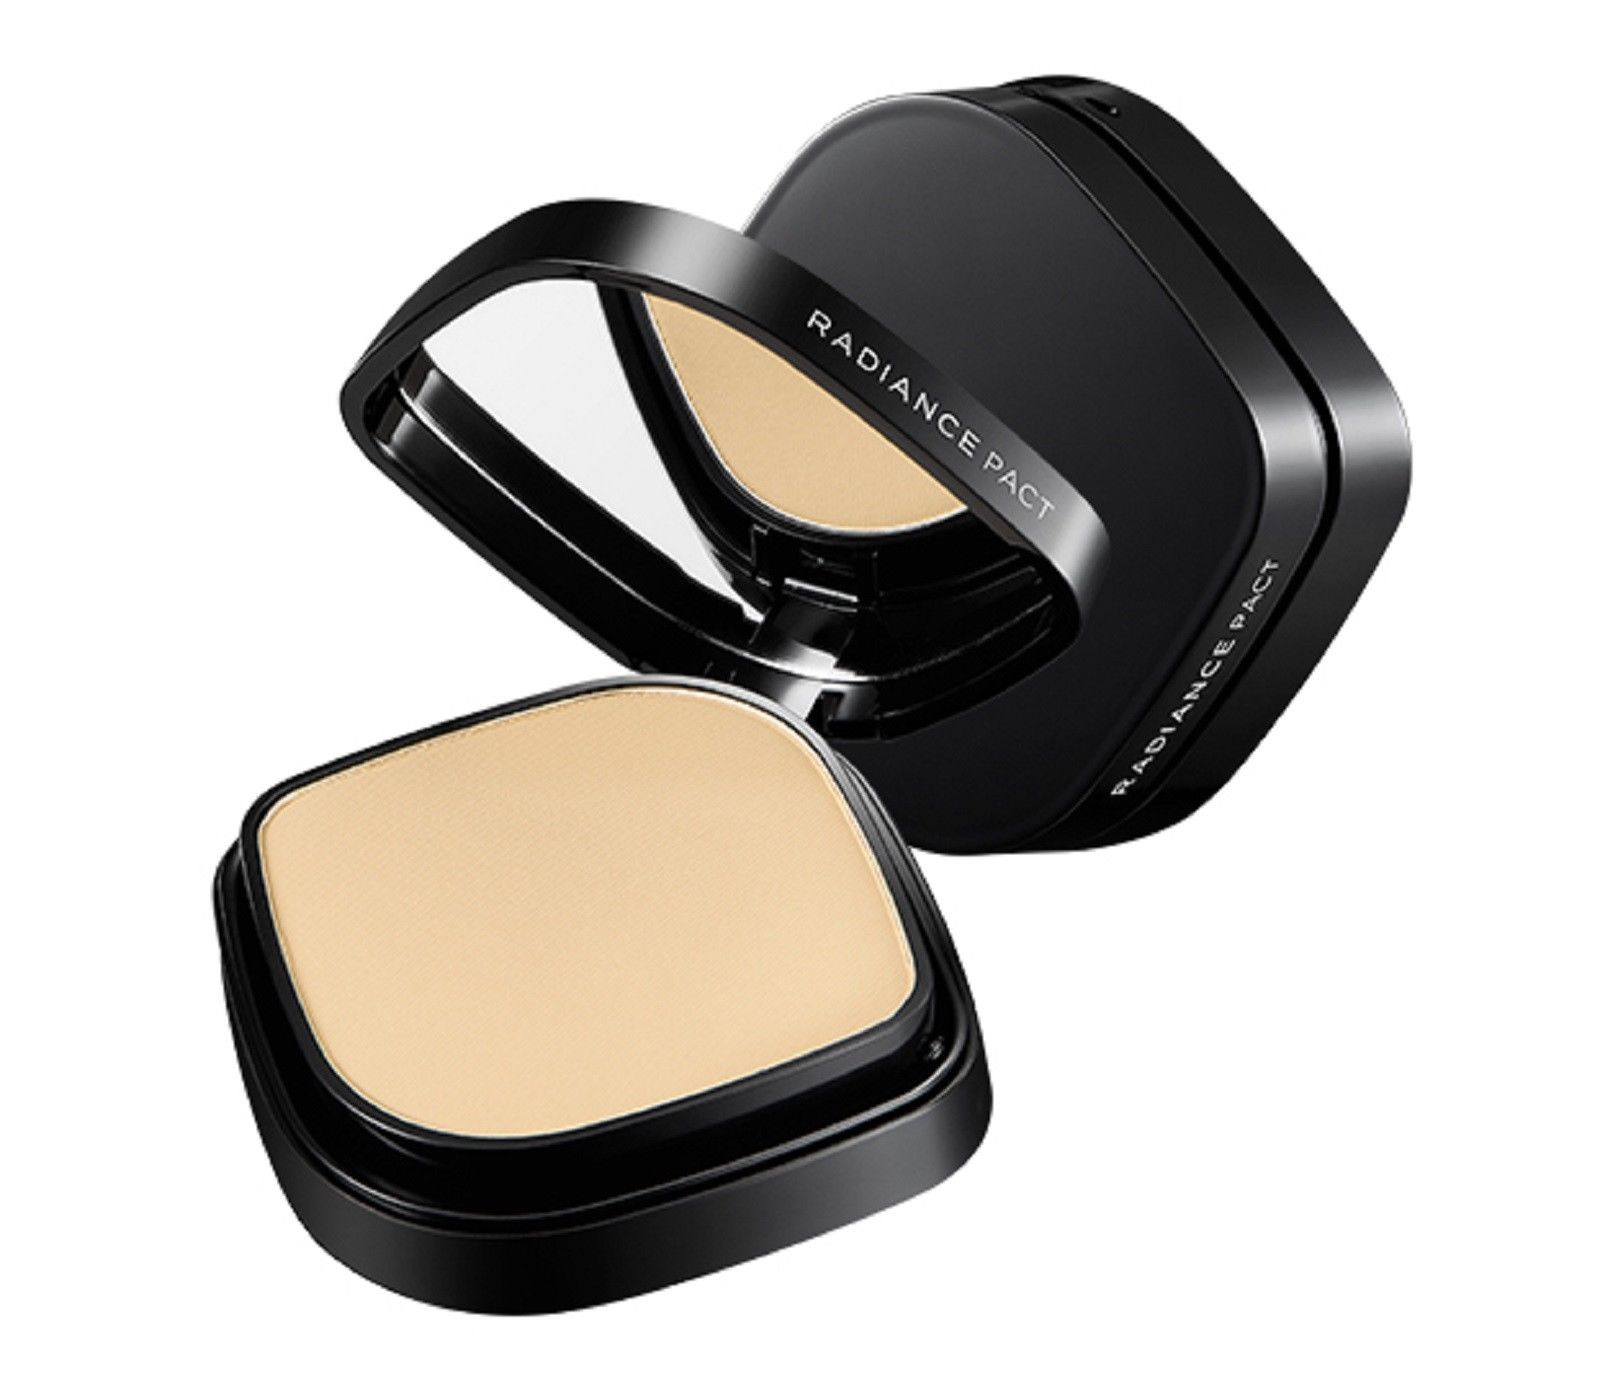 Пудра Missha Radiance Pact missha bb 50ml